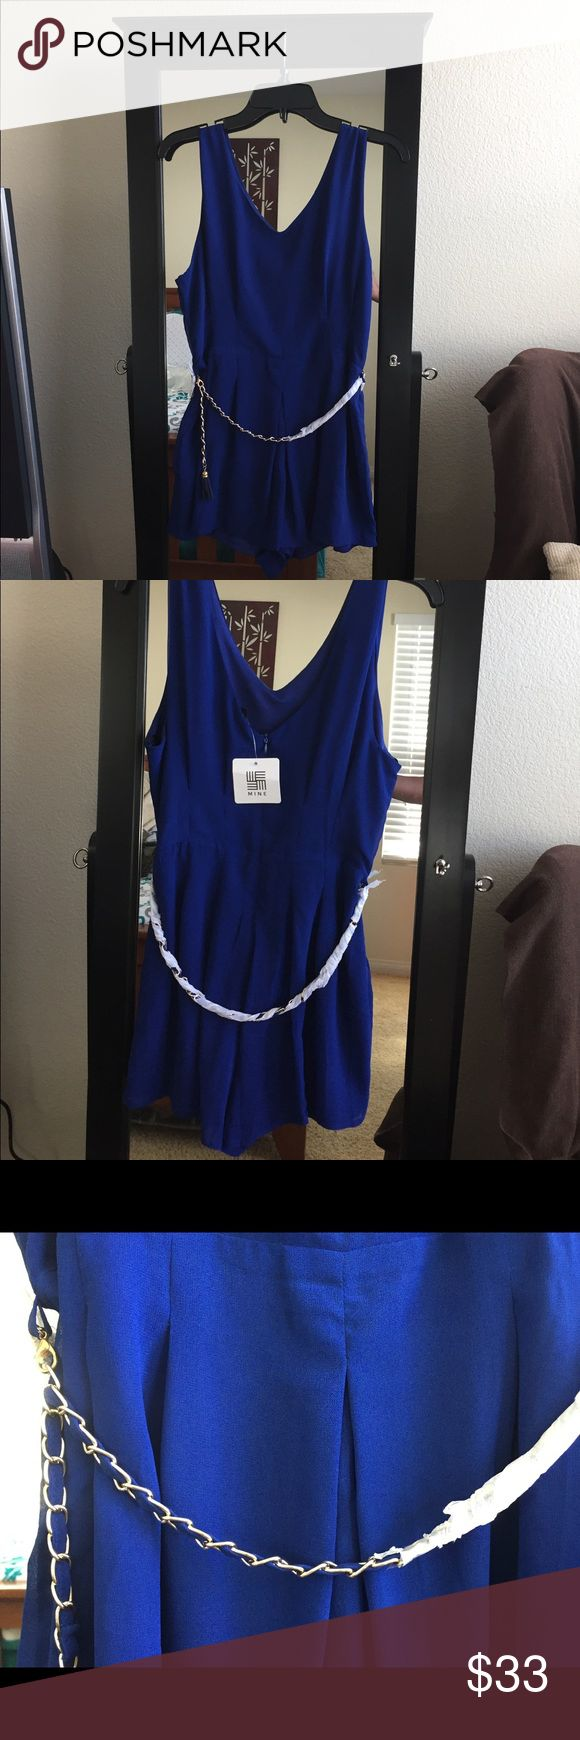 📌Blue Romper w/Gold Link Chain Belt 📌Size:12 Beautiful blue mid thigh length romper with flared short bottom. Hits your curves in all the right places and comes with a gold link belt to accentuate your waistline. Pair with some heels and gold accessories to jazz it up! Mine Clothing Brand Shorts